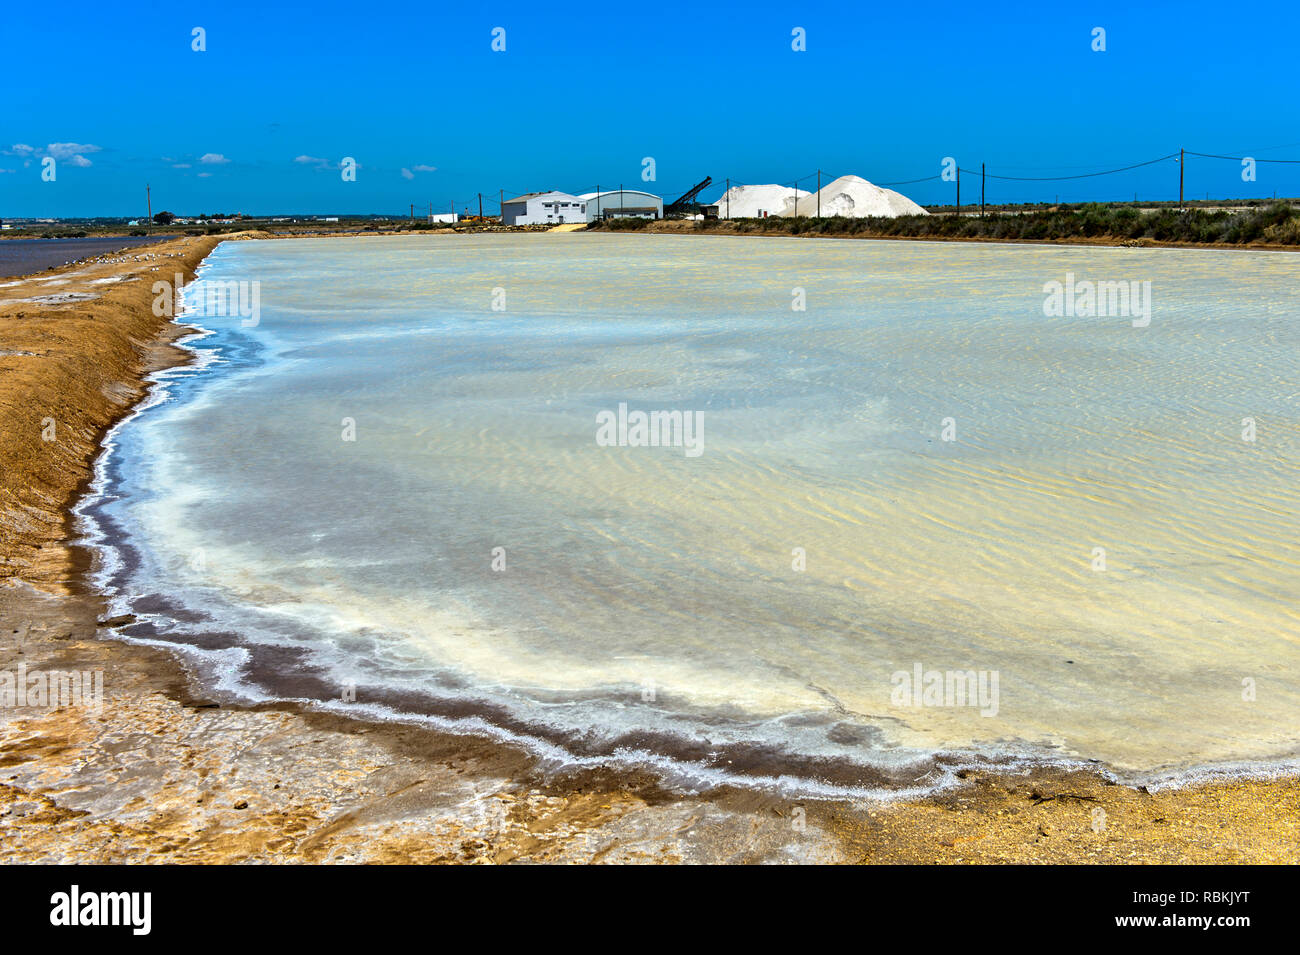 Sea salt production, salt evaporation ponds, Sopursal saline, Santa Luzia, Algarve, Portugal Stock Photo